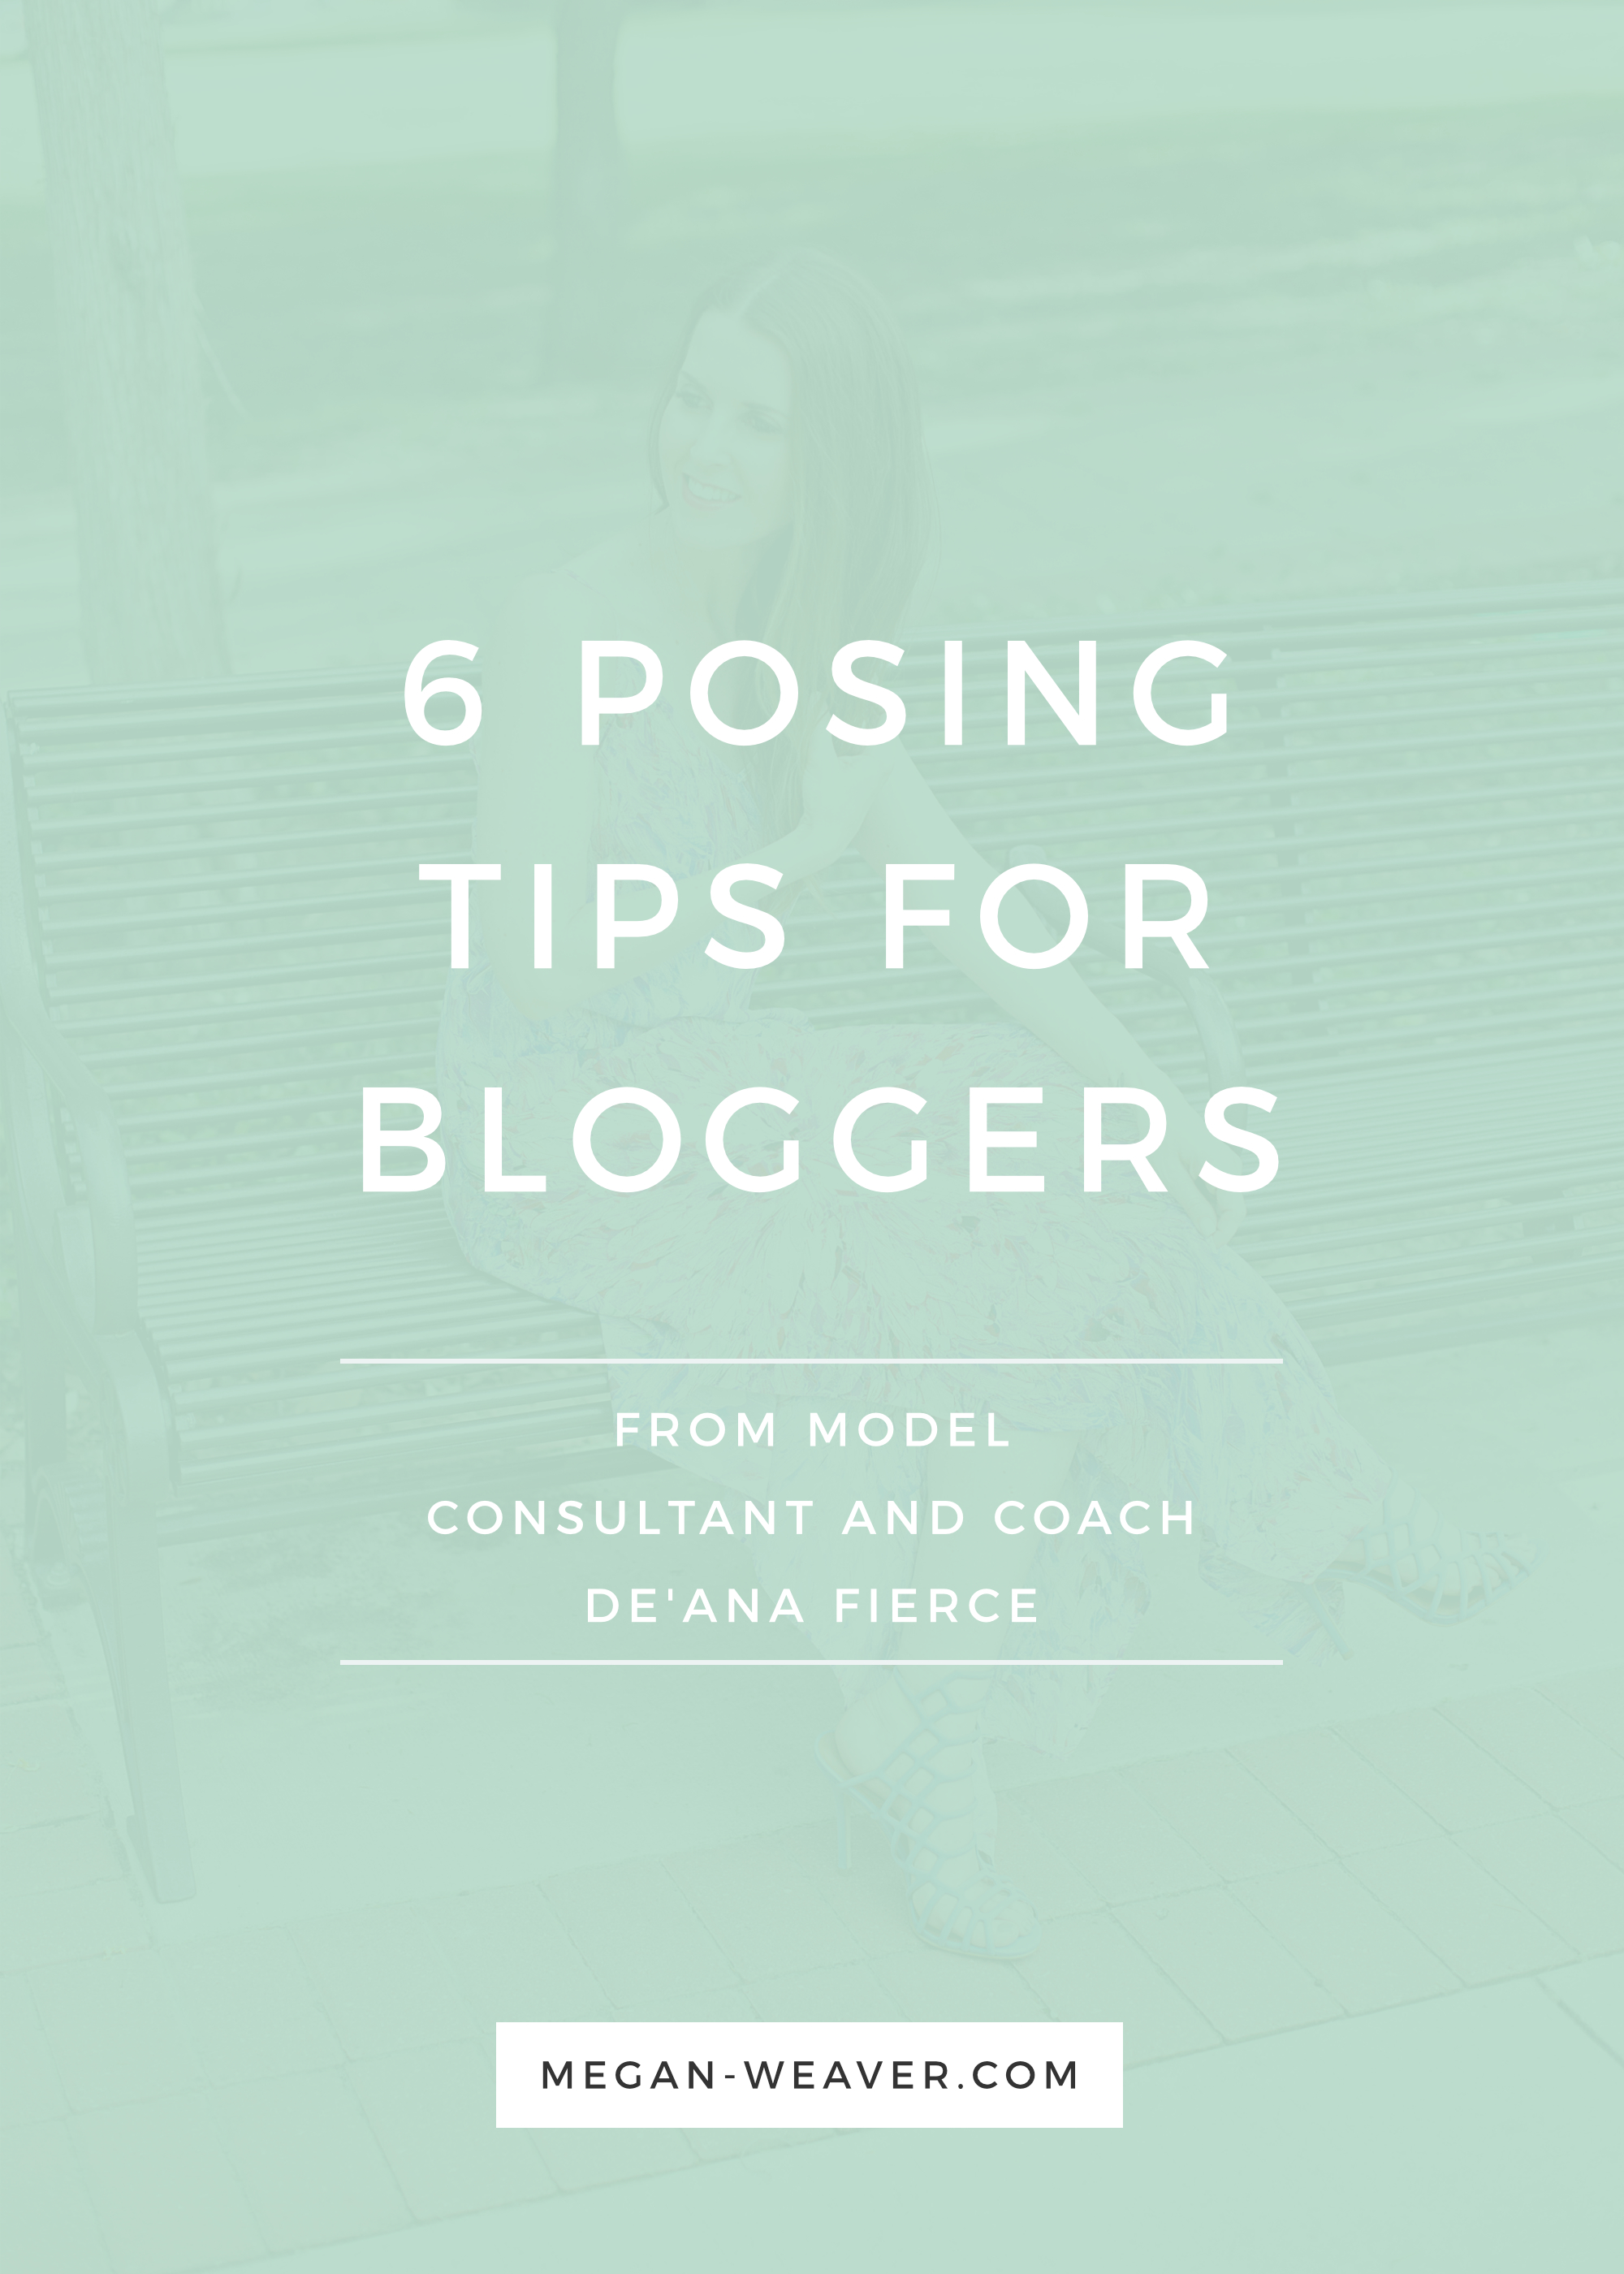 Get your pose on with Model Consultant De'Ana Fierce's 6 steps to remember when taking photos for your blog.